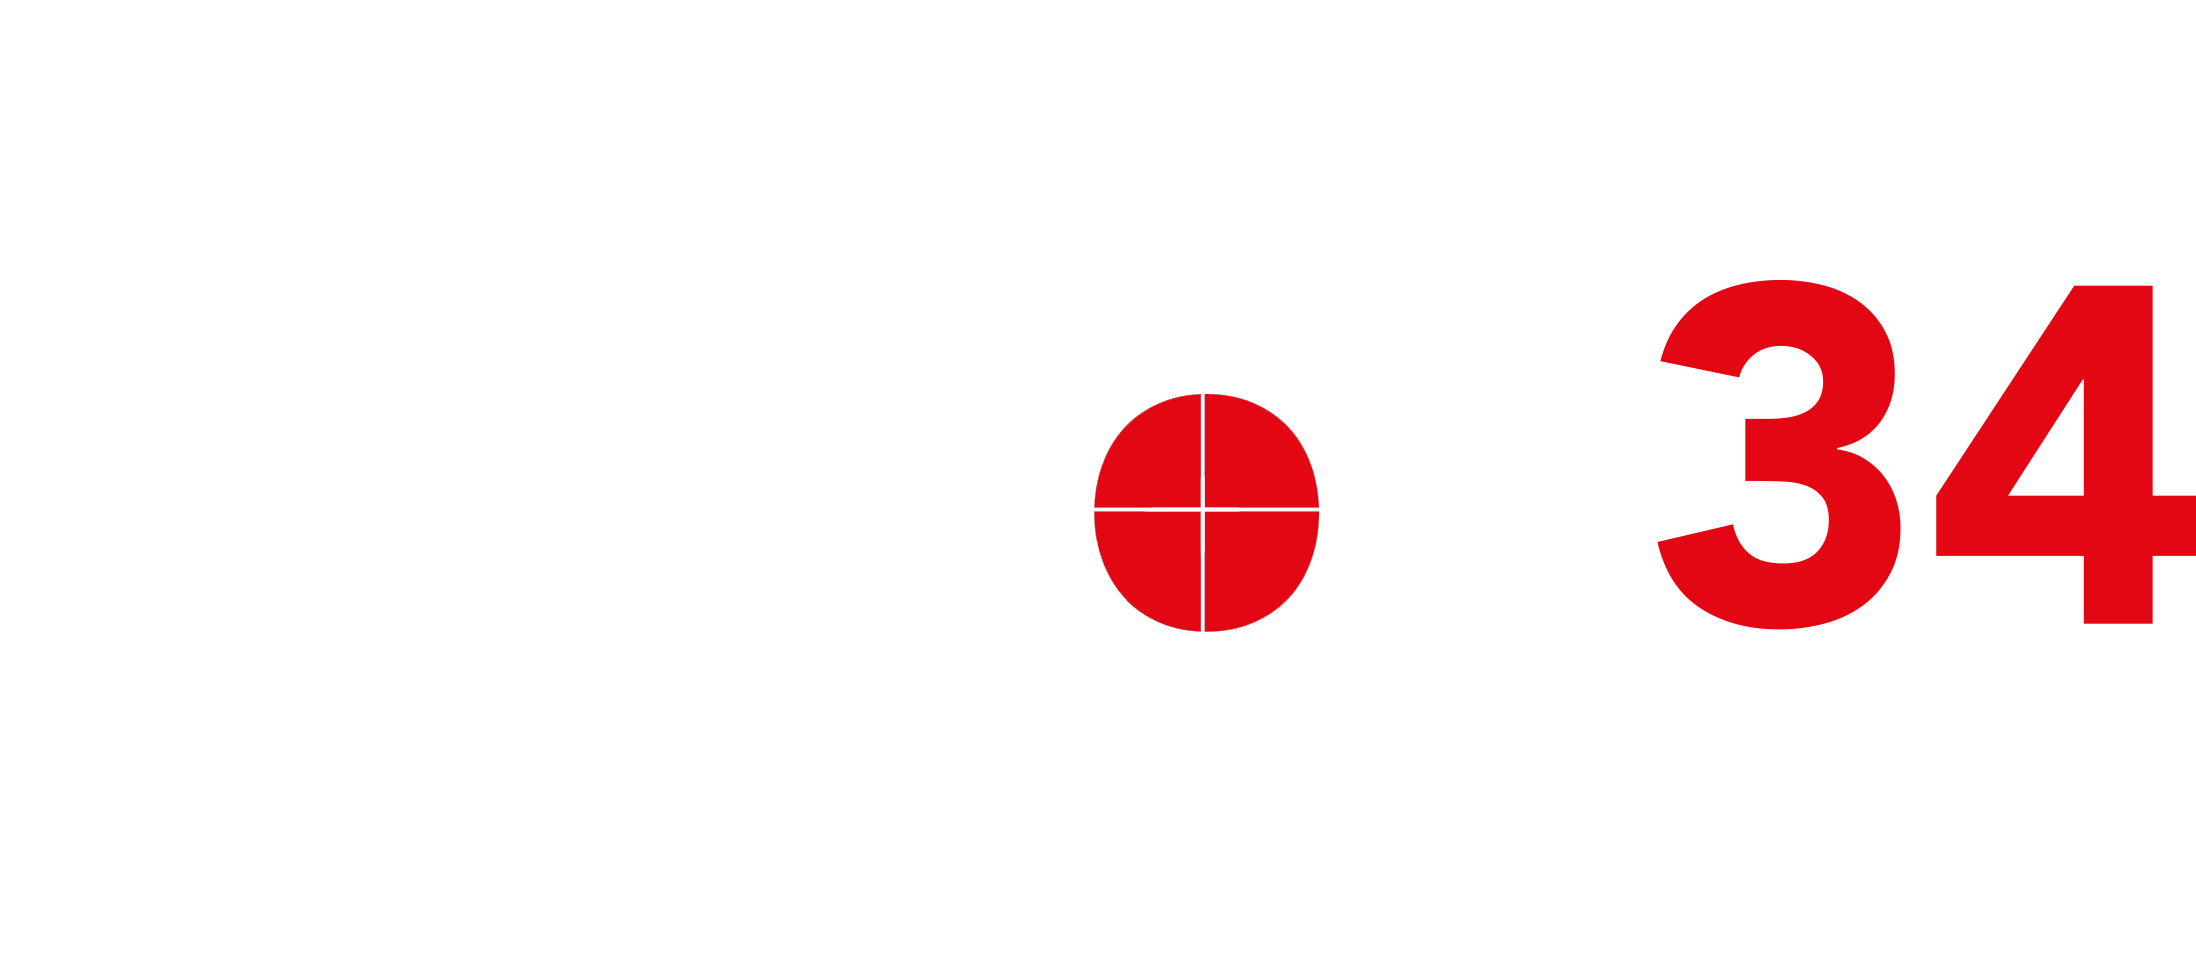 Poligon 34 | Poligon | Shooting Range | الرماية | İstanbul